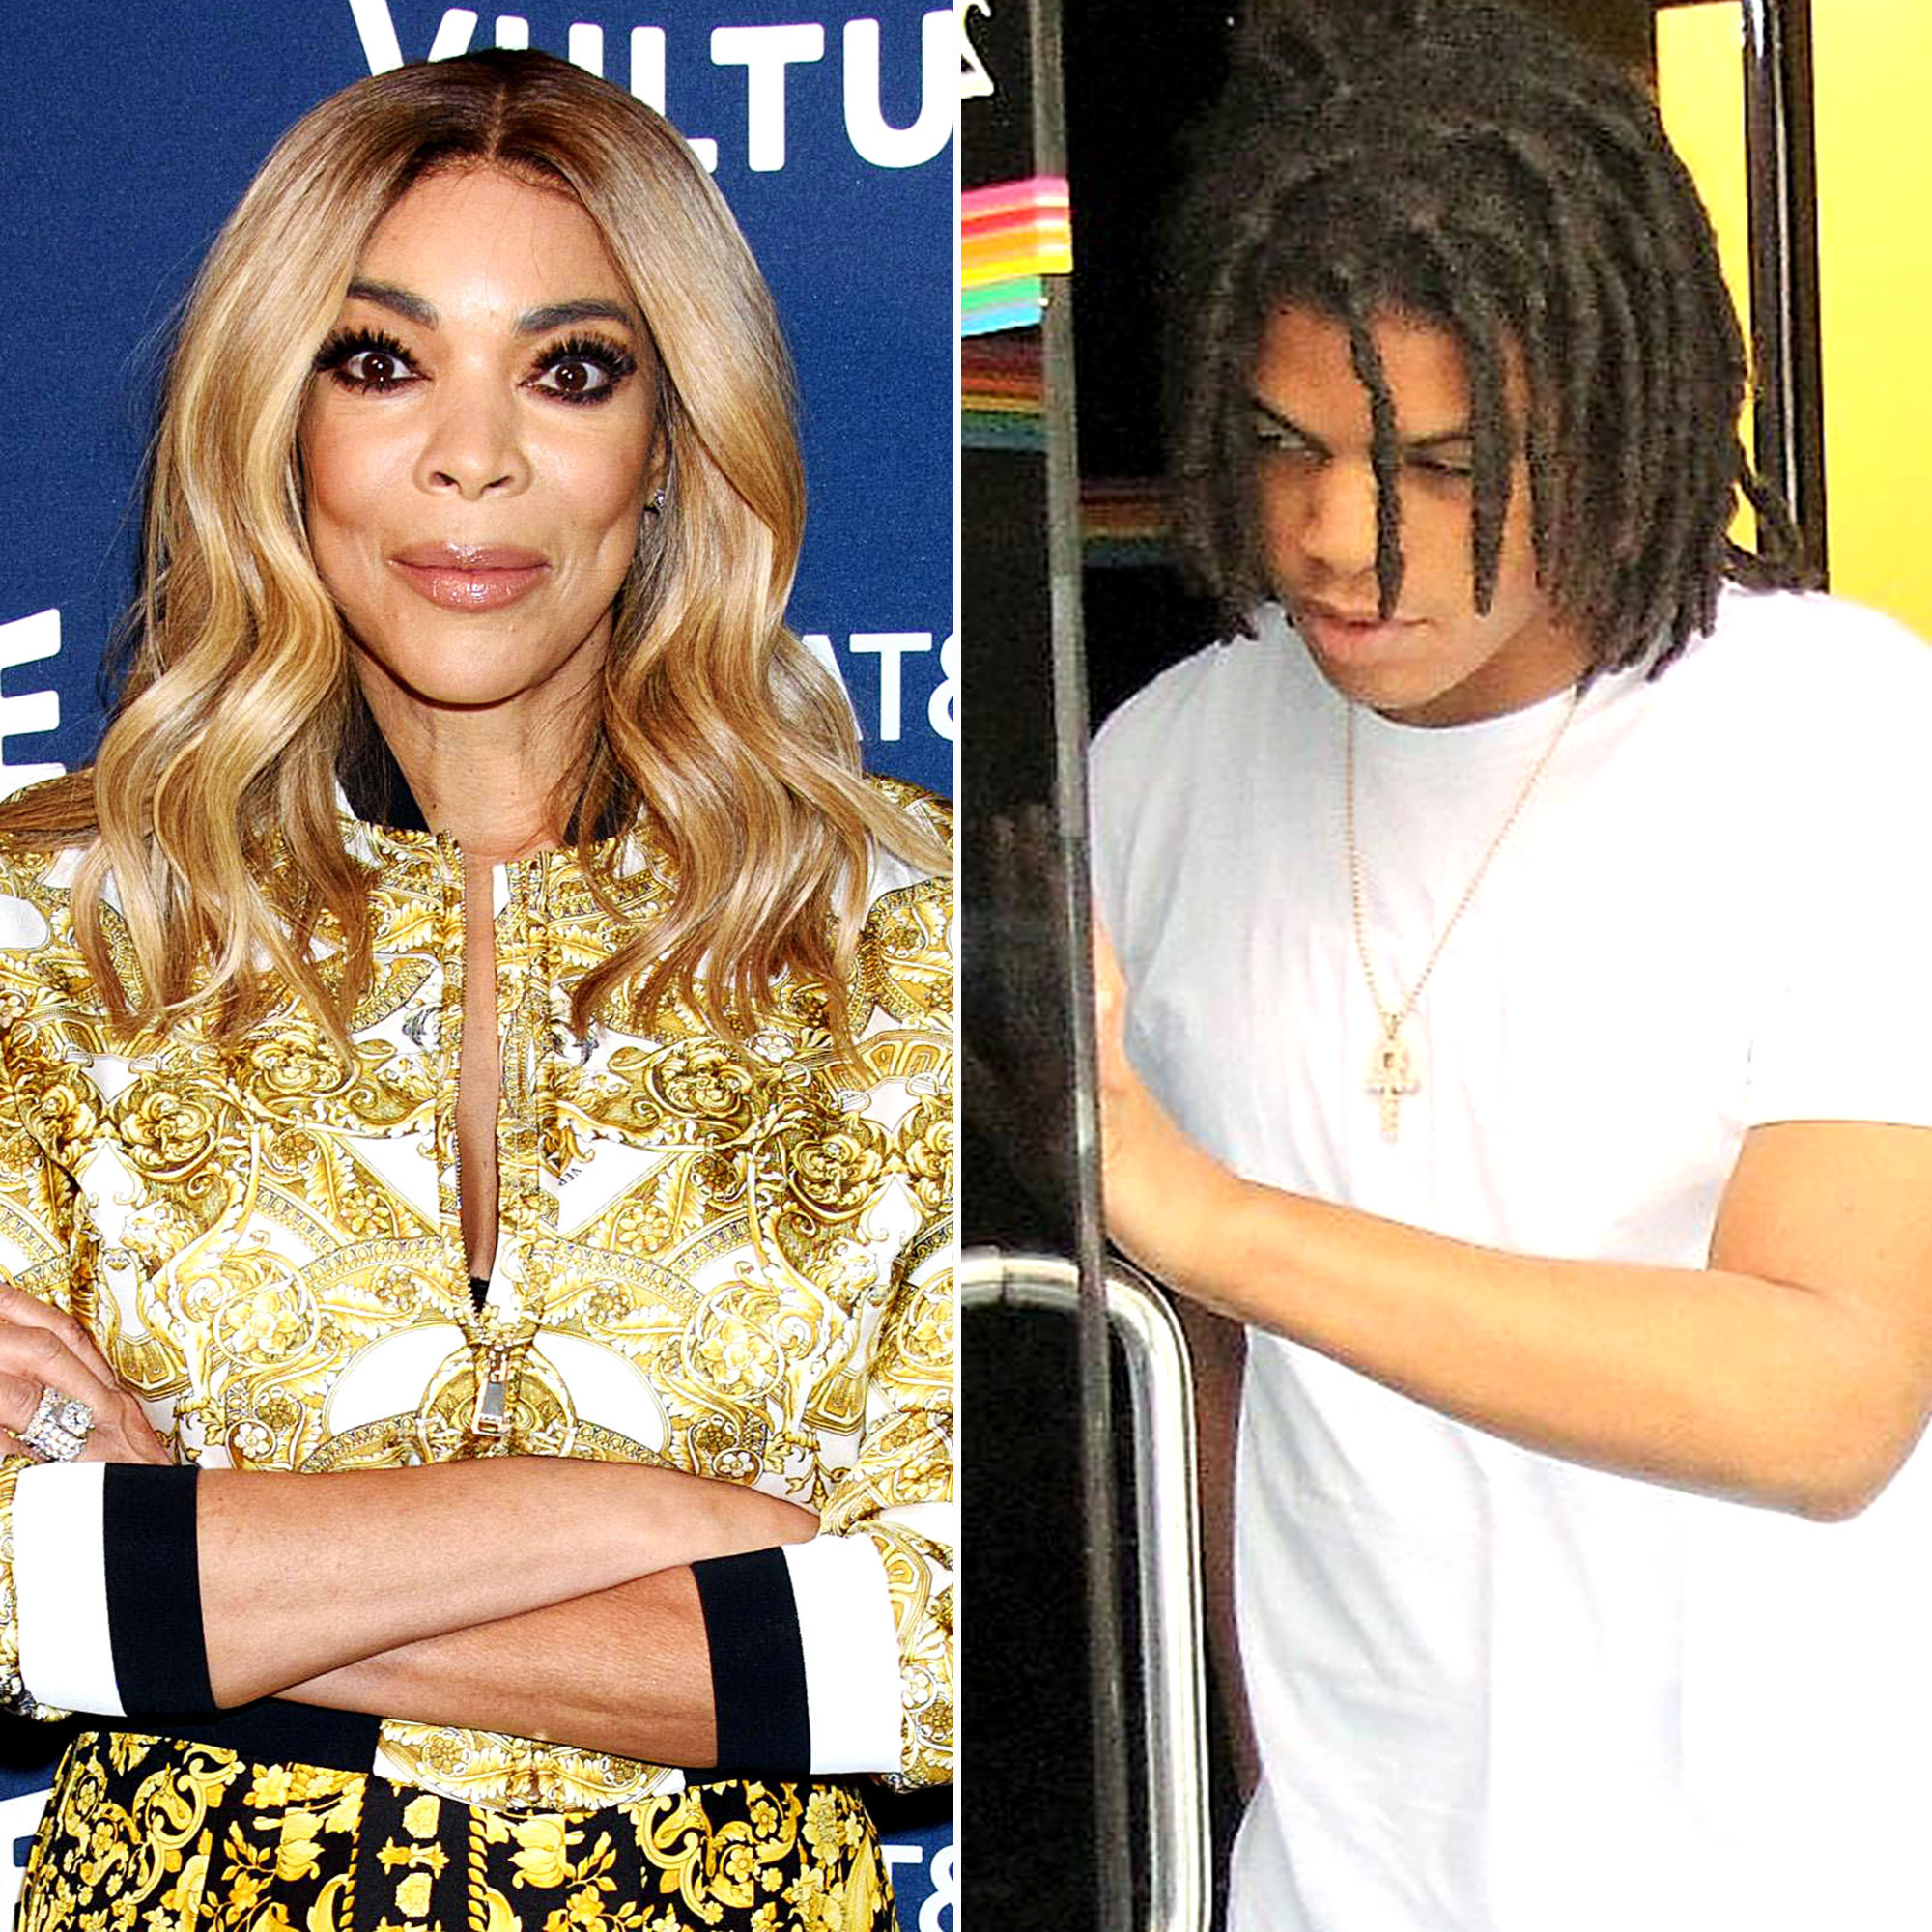 Wendy Williams Son Kevin Travel to Chicago After Arrest for Fight With Dad - Wendy Williams and Kevin Hunter Jr.